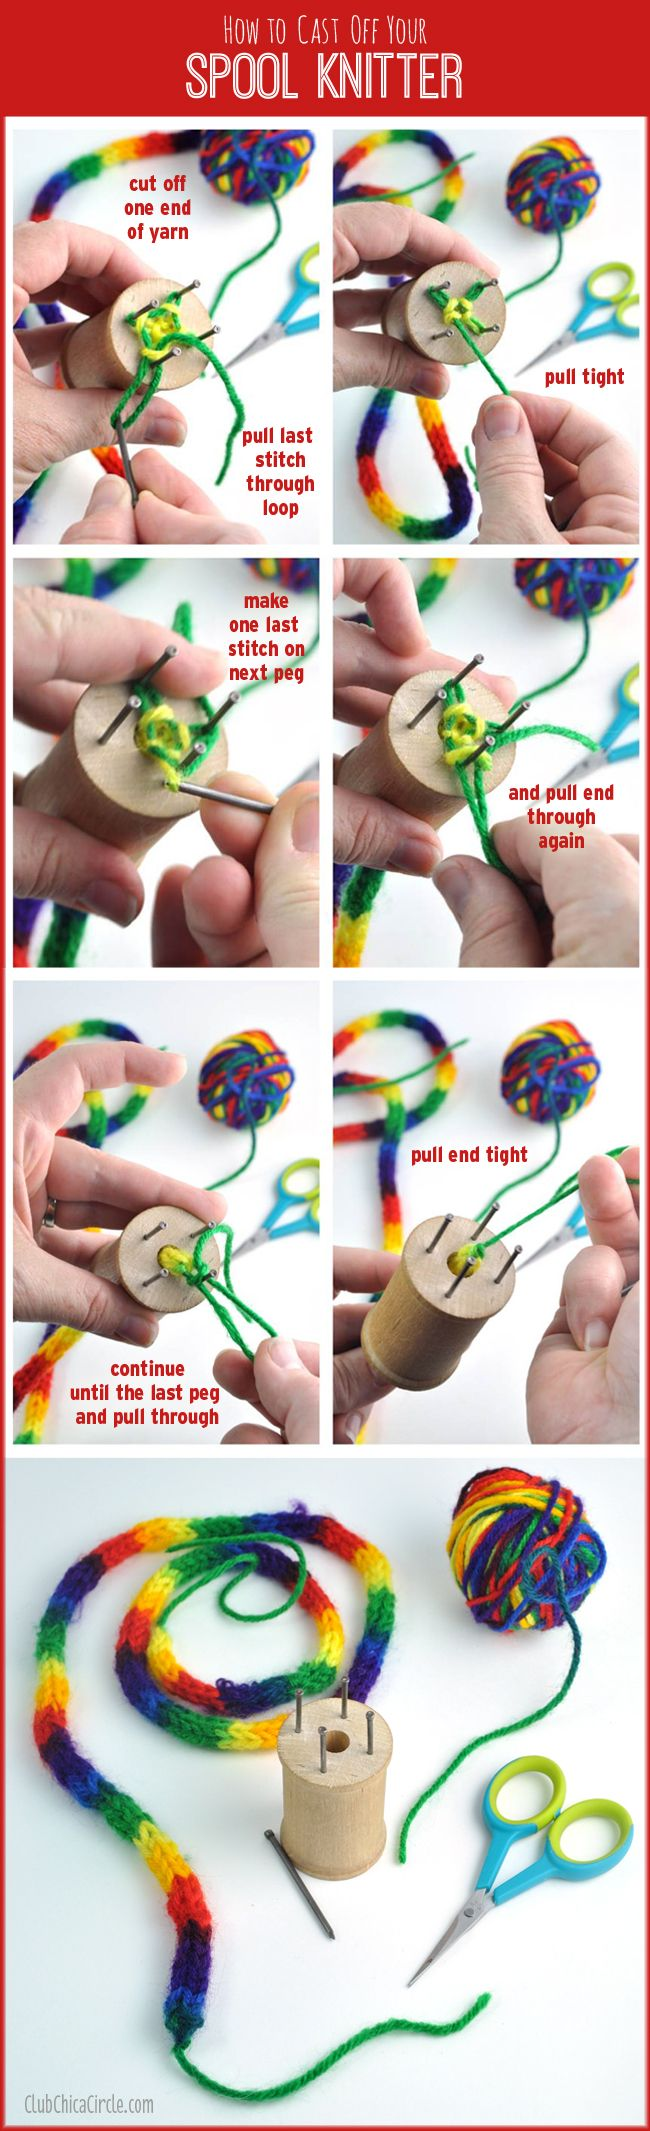 How to Make Your Own Spool Knitter   Club Chica Circle - where crafty is contagious